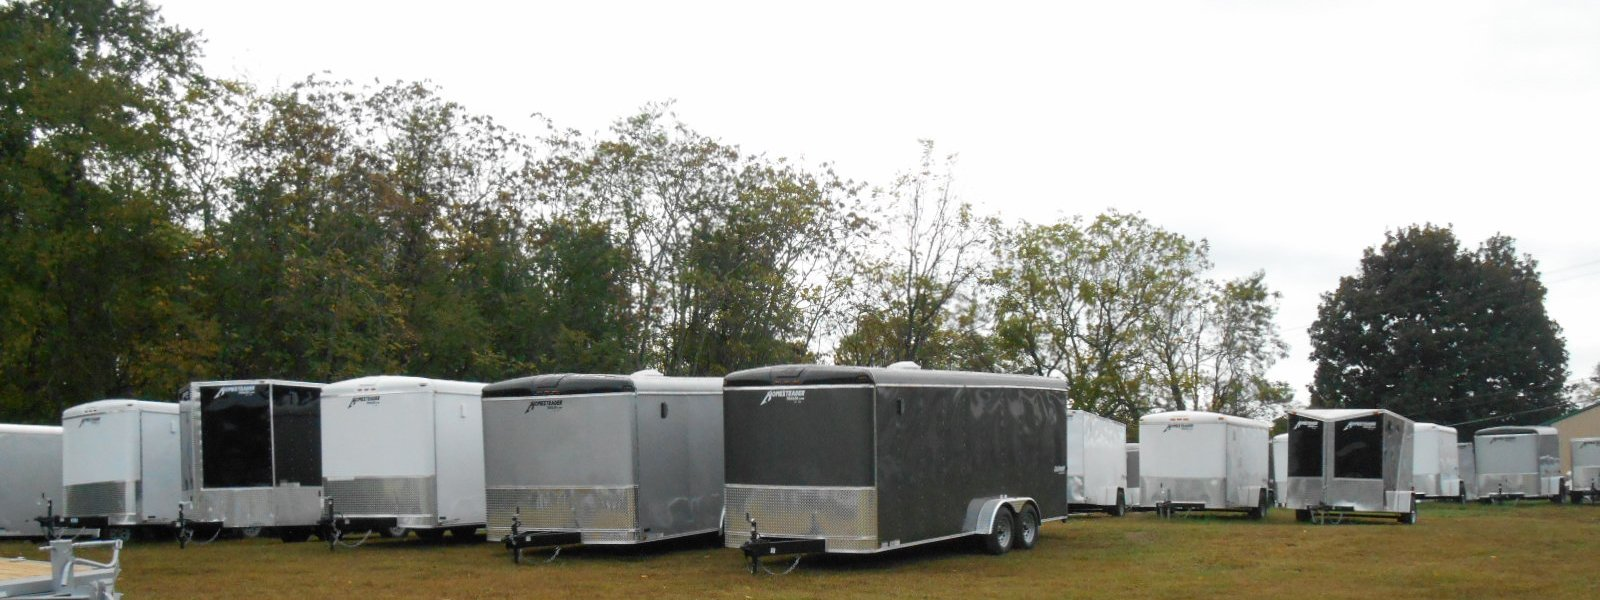 New London Trailers In Forest VA Is Your 1 Stop Trailer Store